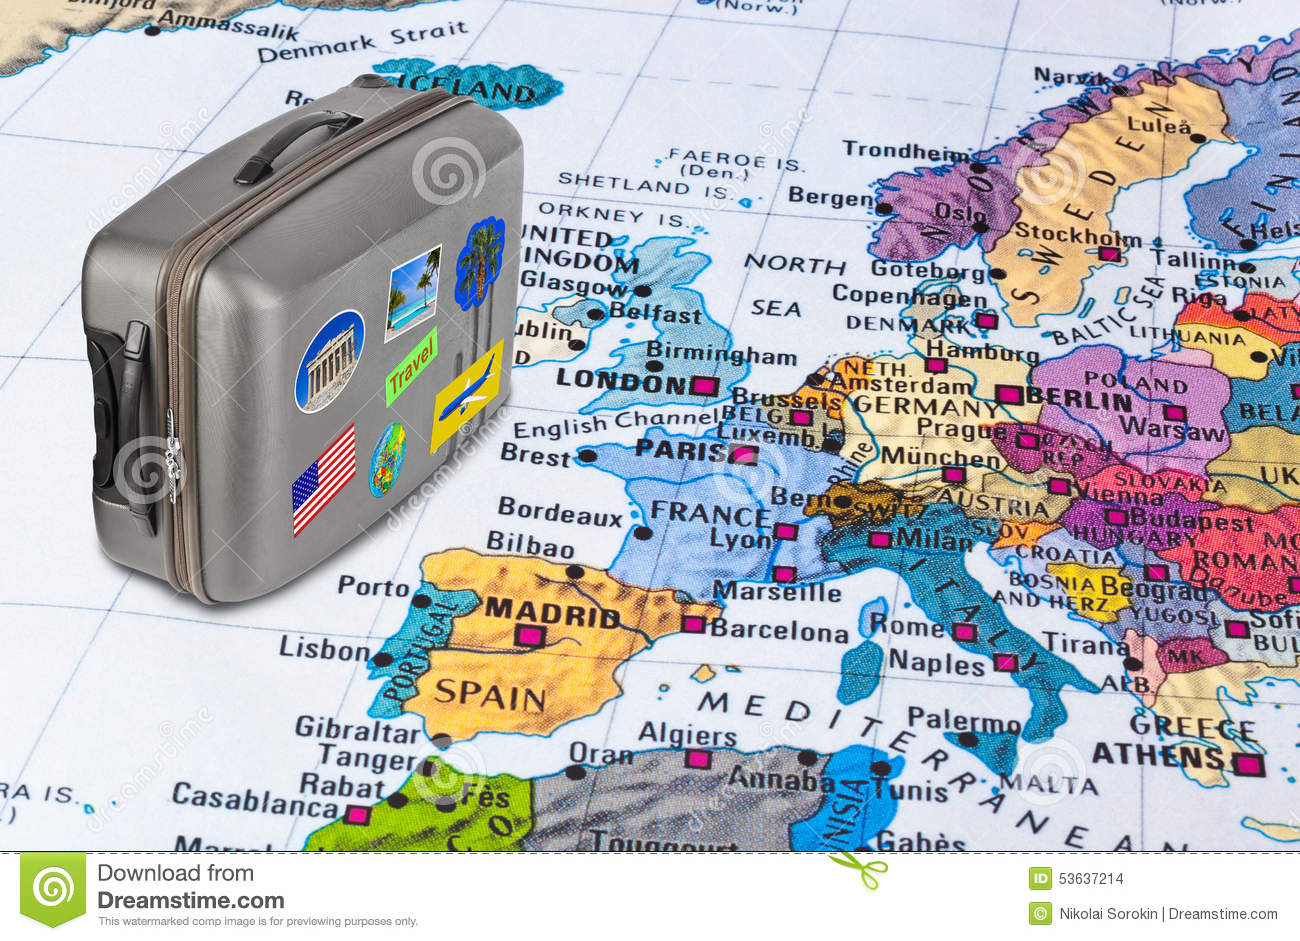 europe-map-travel-case-stickers-my-photos-background-53637214.jpg